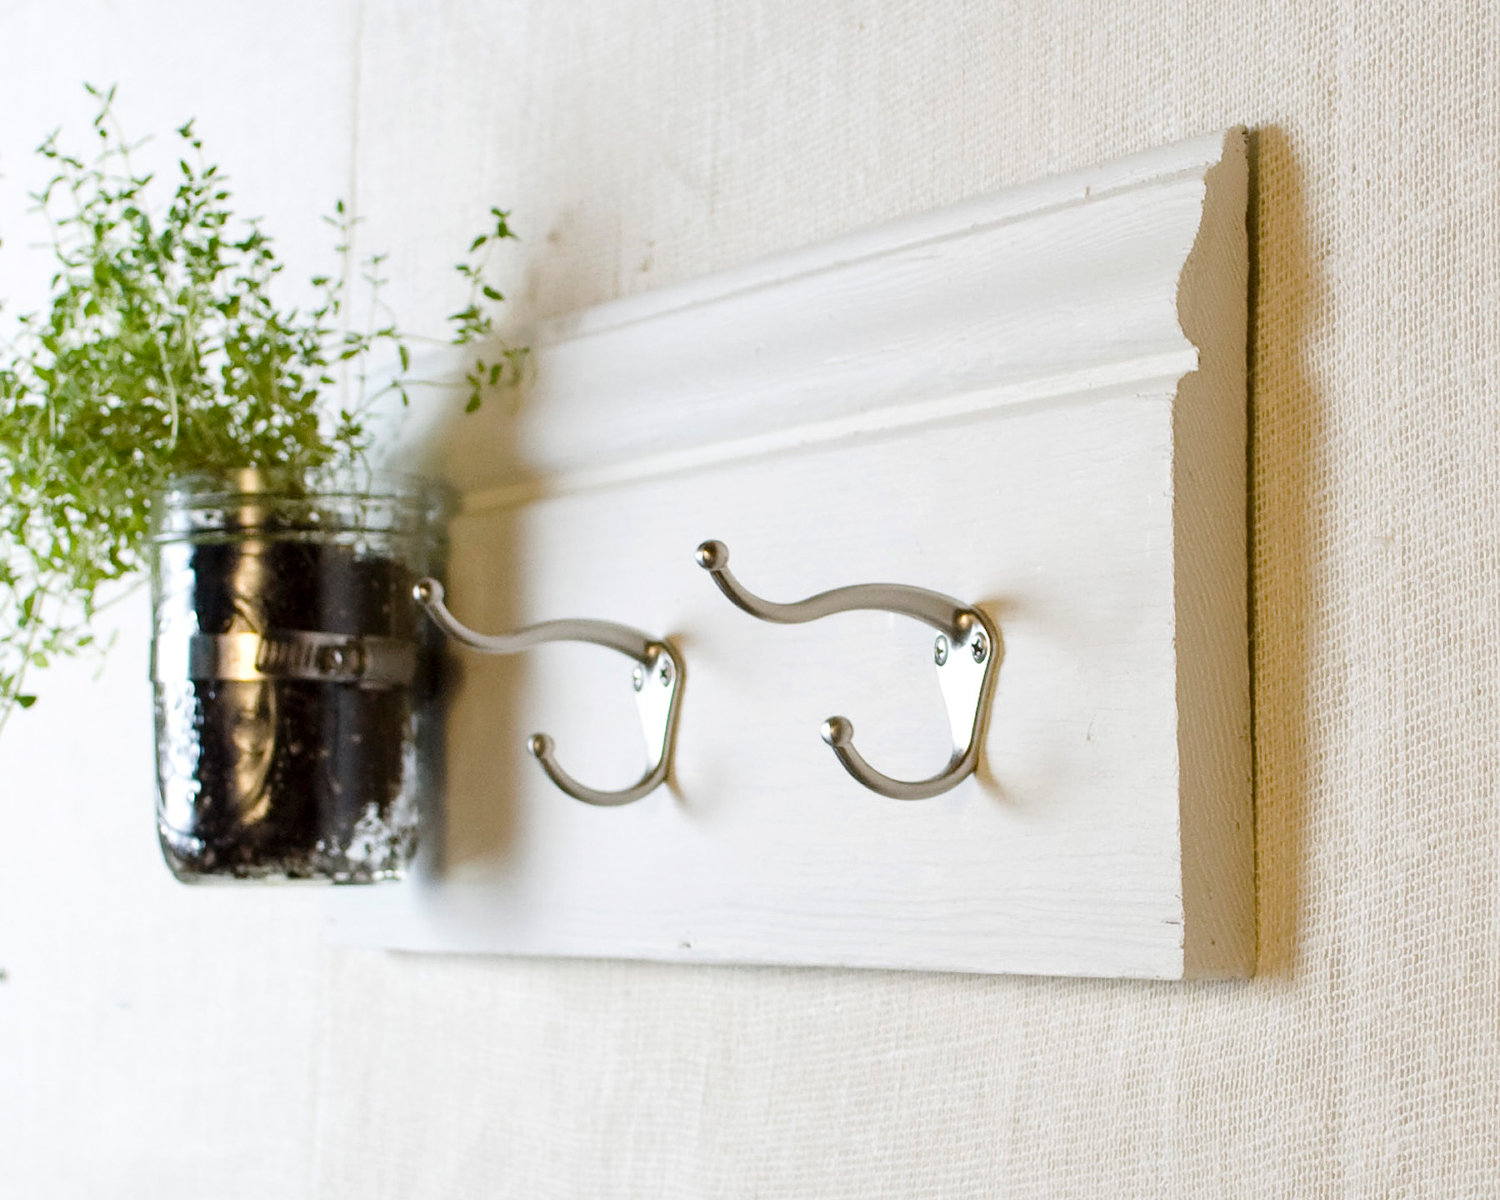 Extraordinary Wall Hooks For Coats As Your Simple Amazing Inspiration: Coat Hooks With Wall Vase Mason